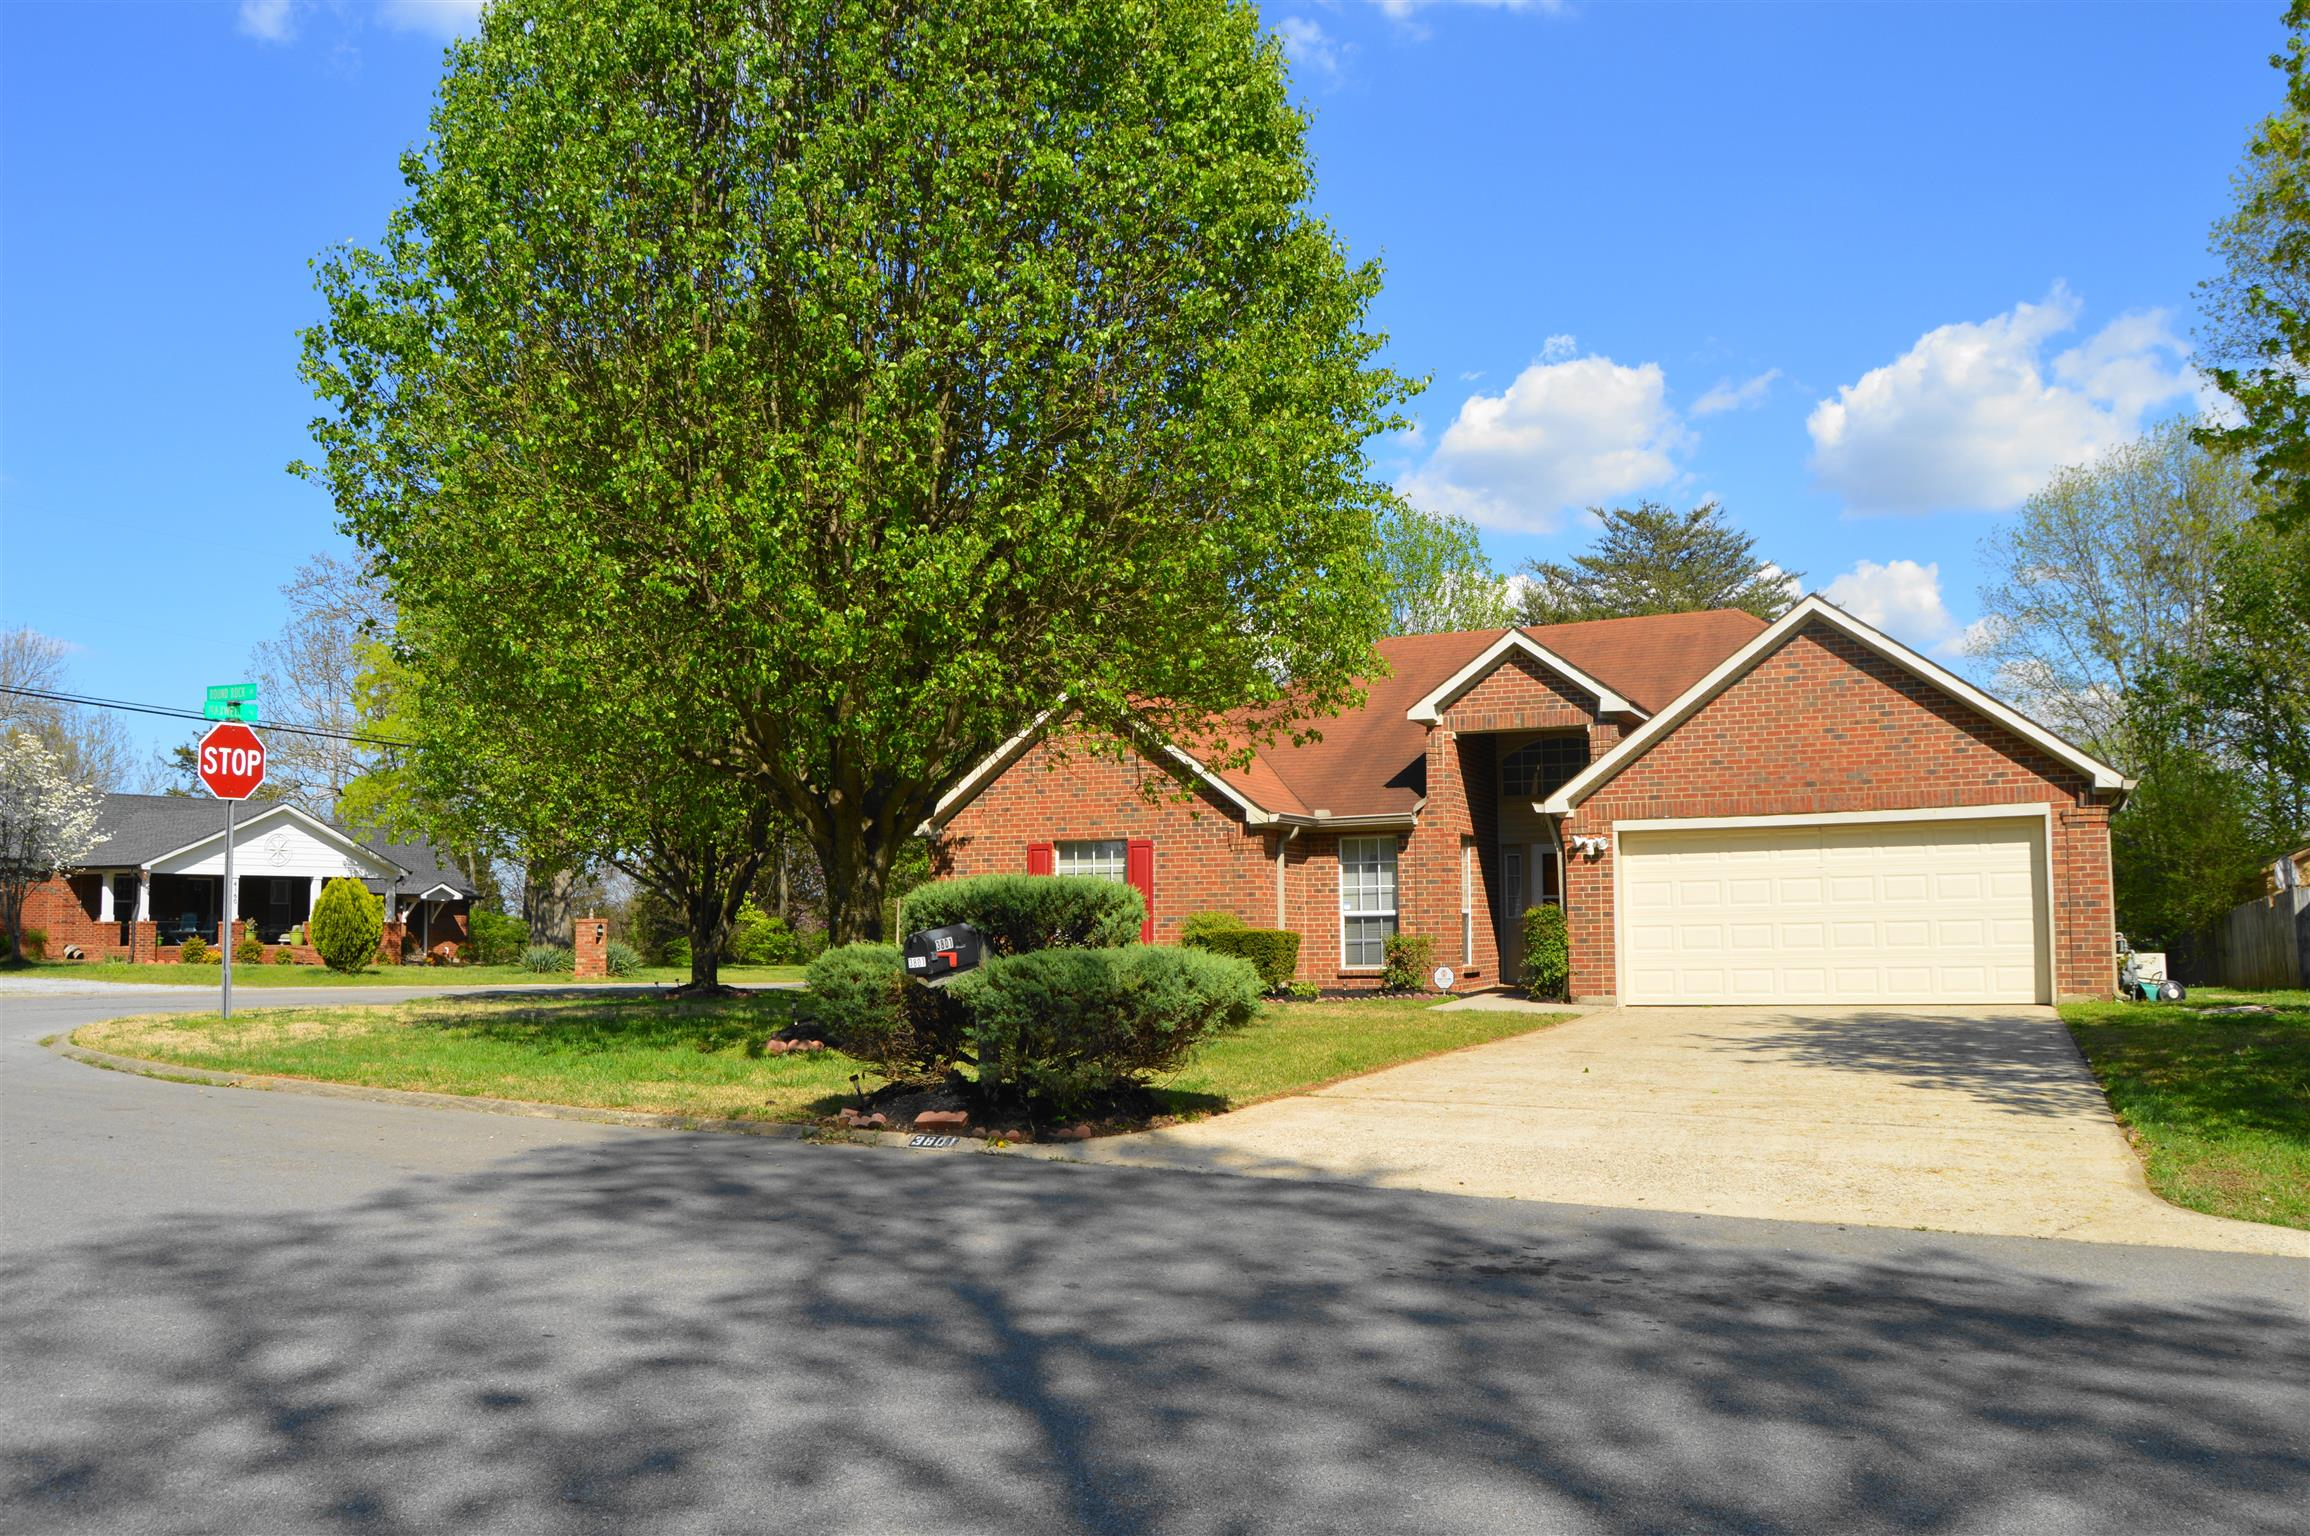 3801 Round Rock Dr, Nashville-Antioch in Davidson County County, TN 37013 Home for Sale